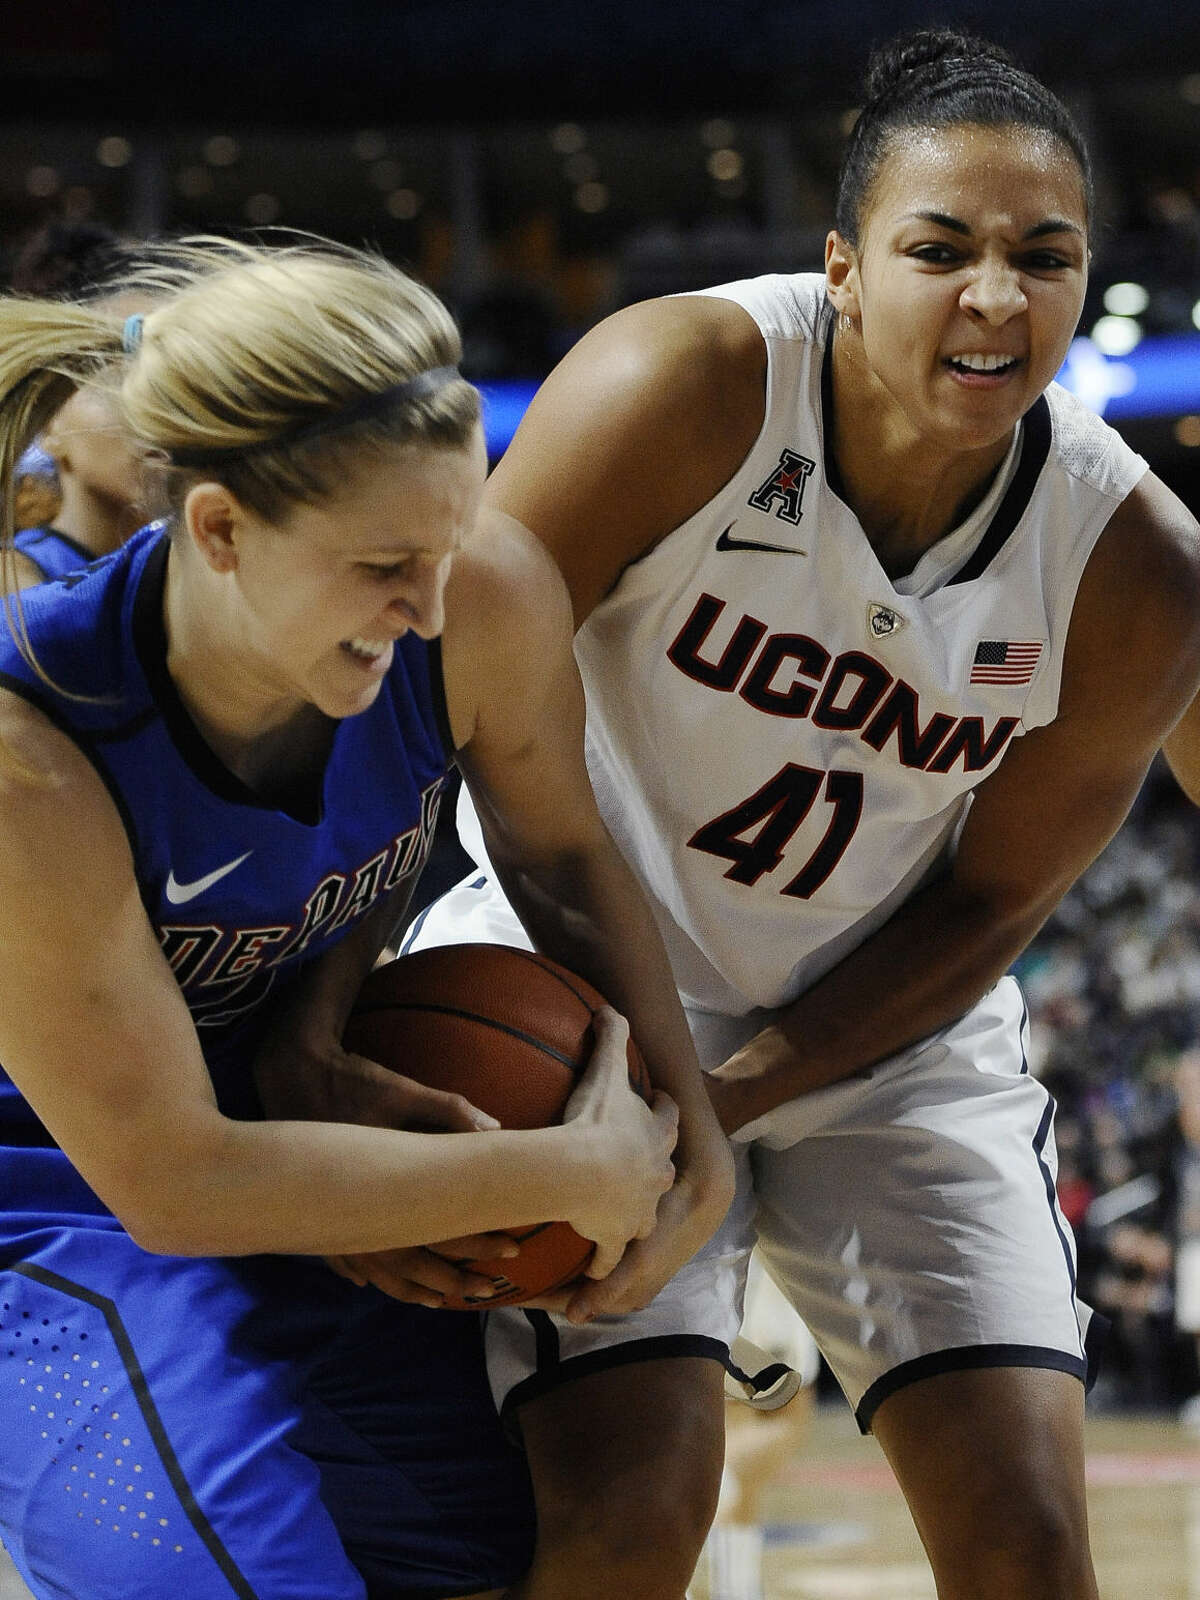 DePaul's Brooke Schulte, left, and Connecticut's Kiah Stokes, fight for control of the ball during the first half of an NCAA college basketball game, Friday, Dec. 19, 2014, in Bridgeport, Conn. (AP Photo/Jessica Hill)